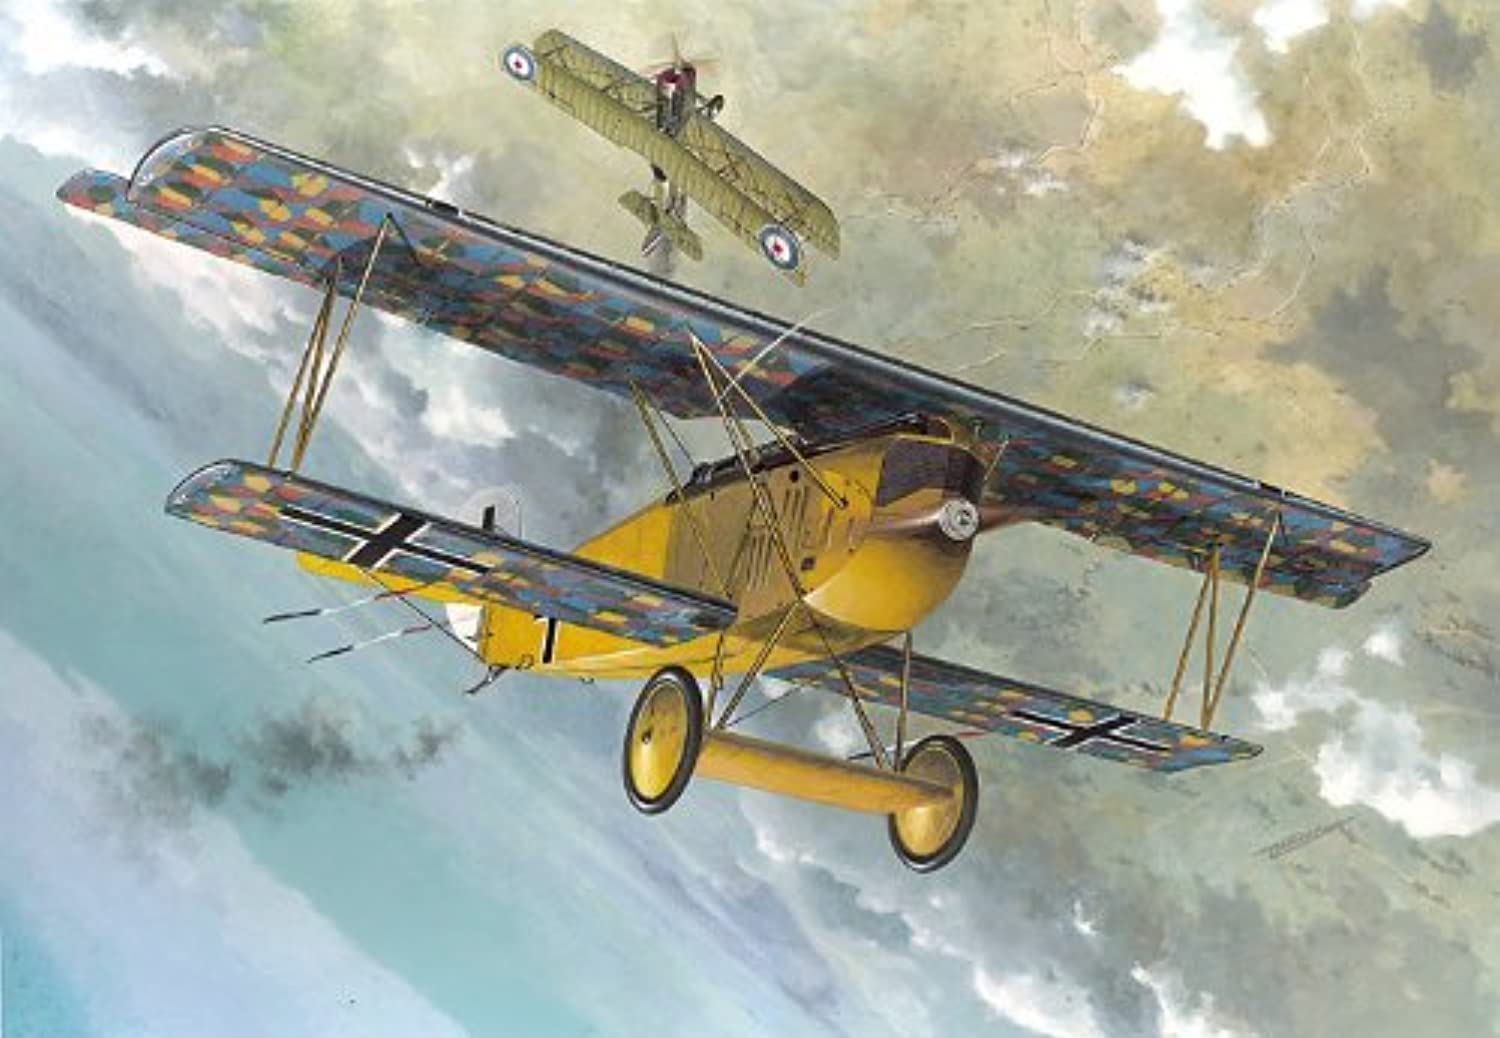 Roden Fokker D.VIIF Late German Fighter Airplane Model Kit by Roden